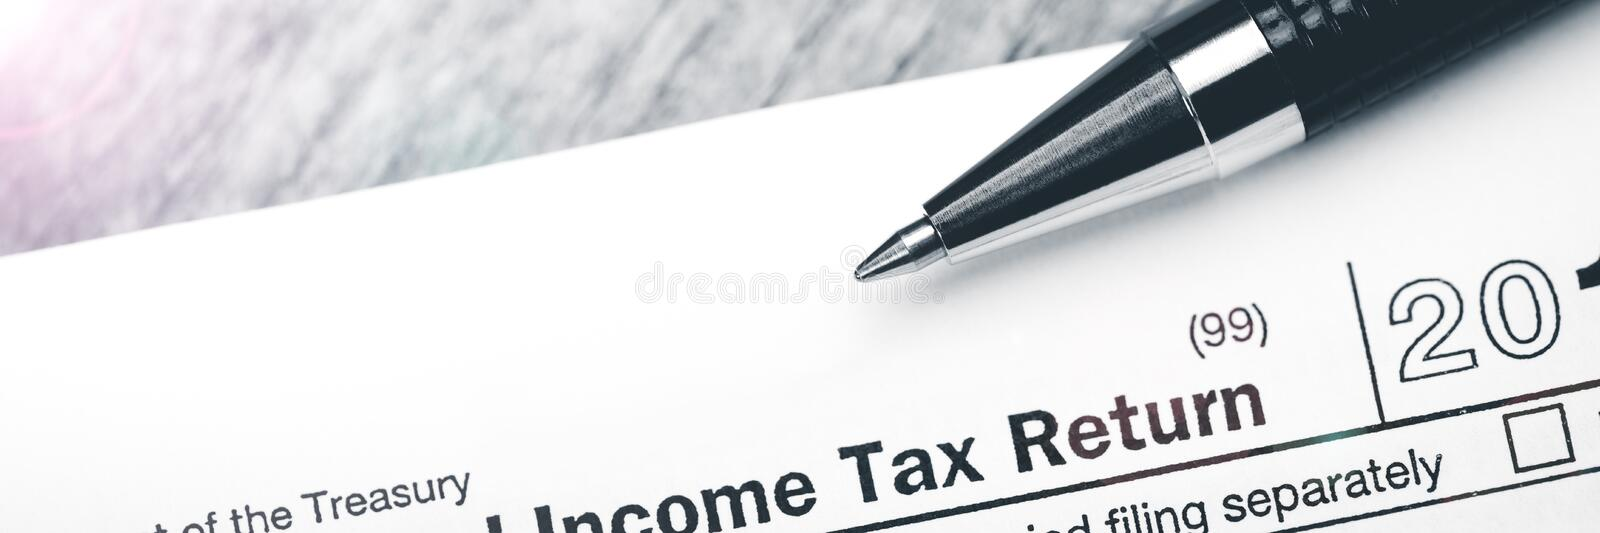 Income Tax Return Form With Pen royalty free stock photos